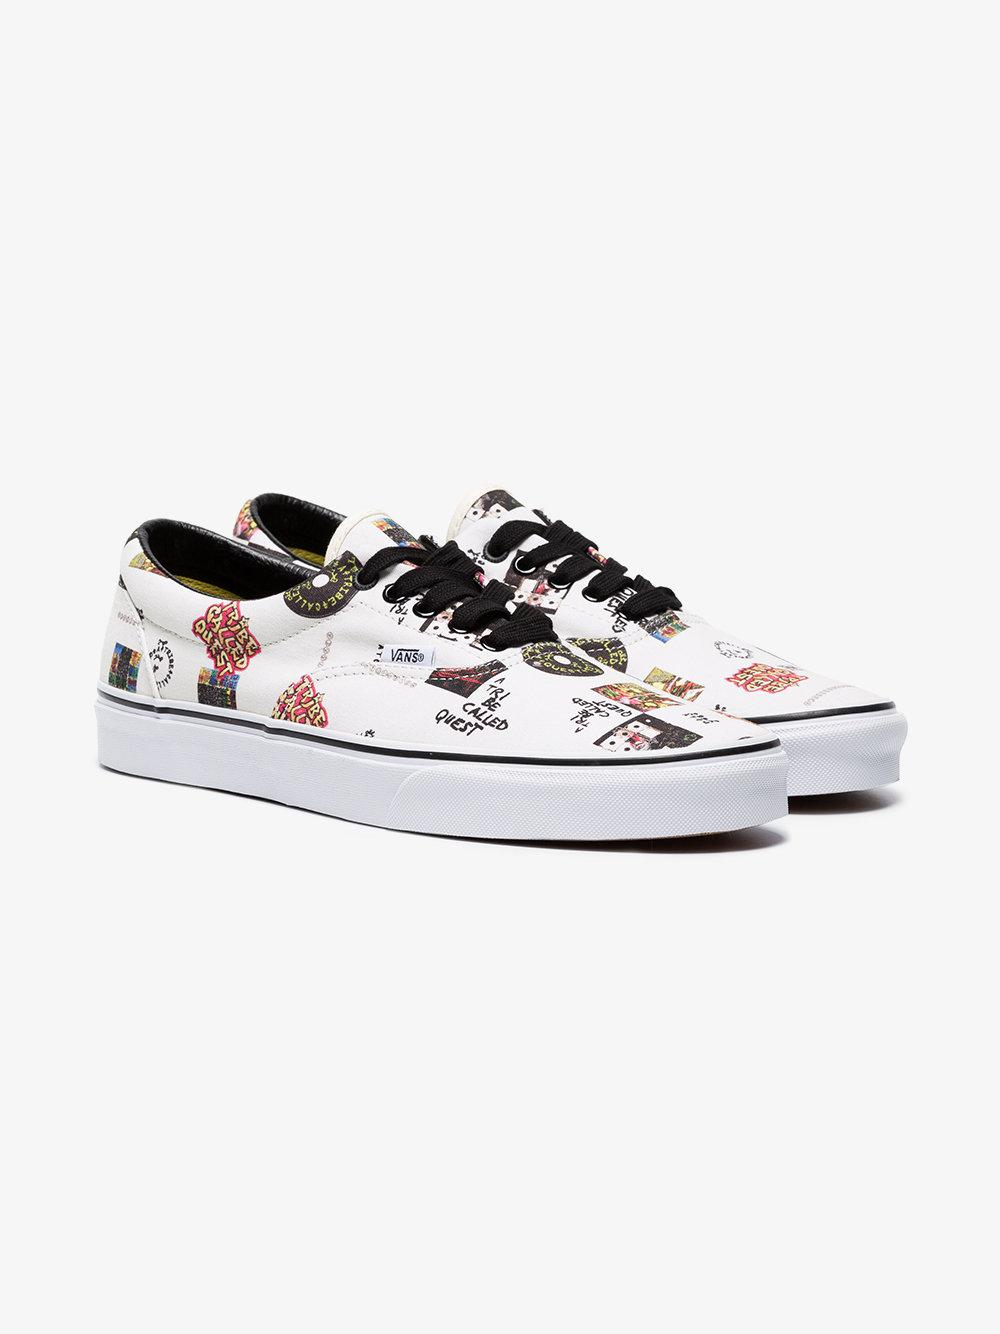 8b54eb2d80 Lyst - Vans Ua Era A Tribe Called Quest Print Cotton Sneakers in ...